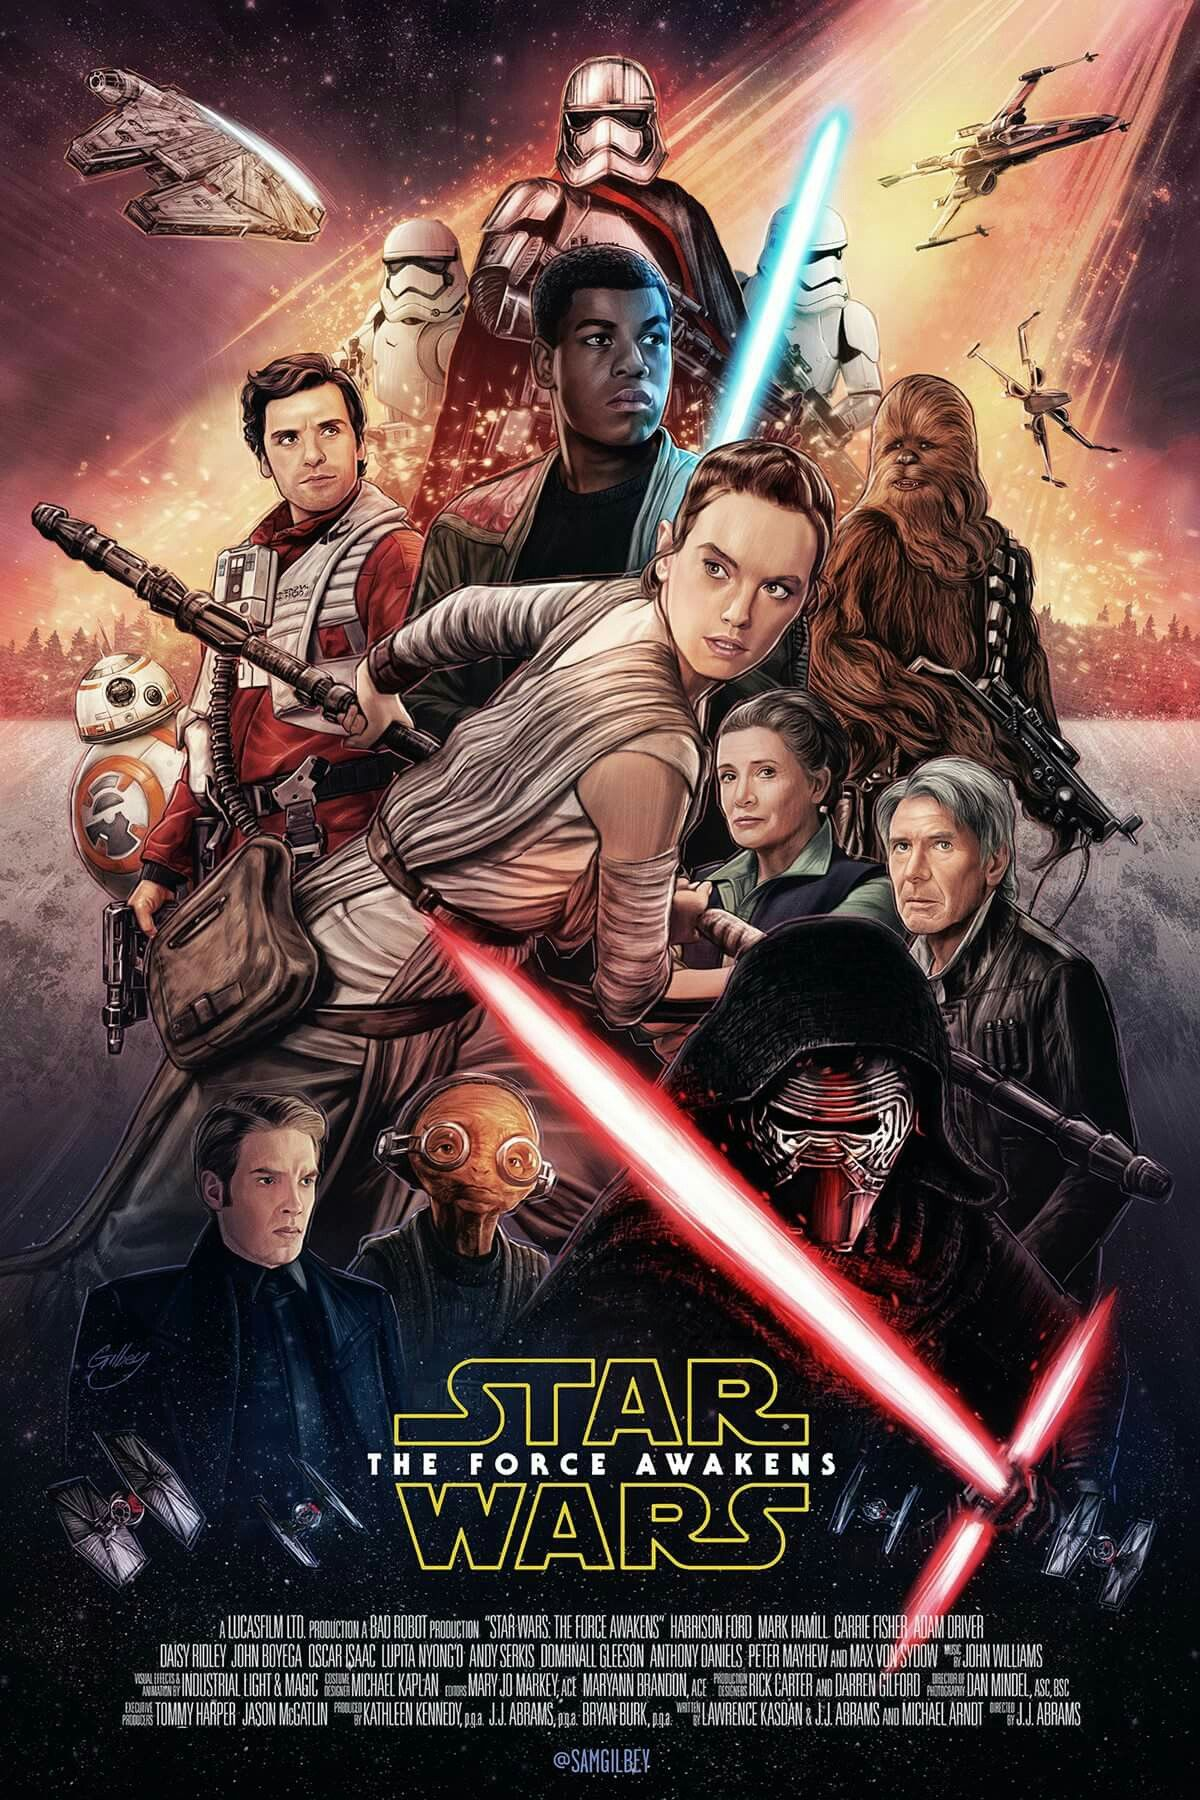 Pin By Evan Garcia On That Was Lucky Star Wars Movies Posters Star Wars Poster Star Wars Pictures